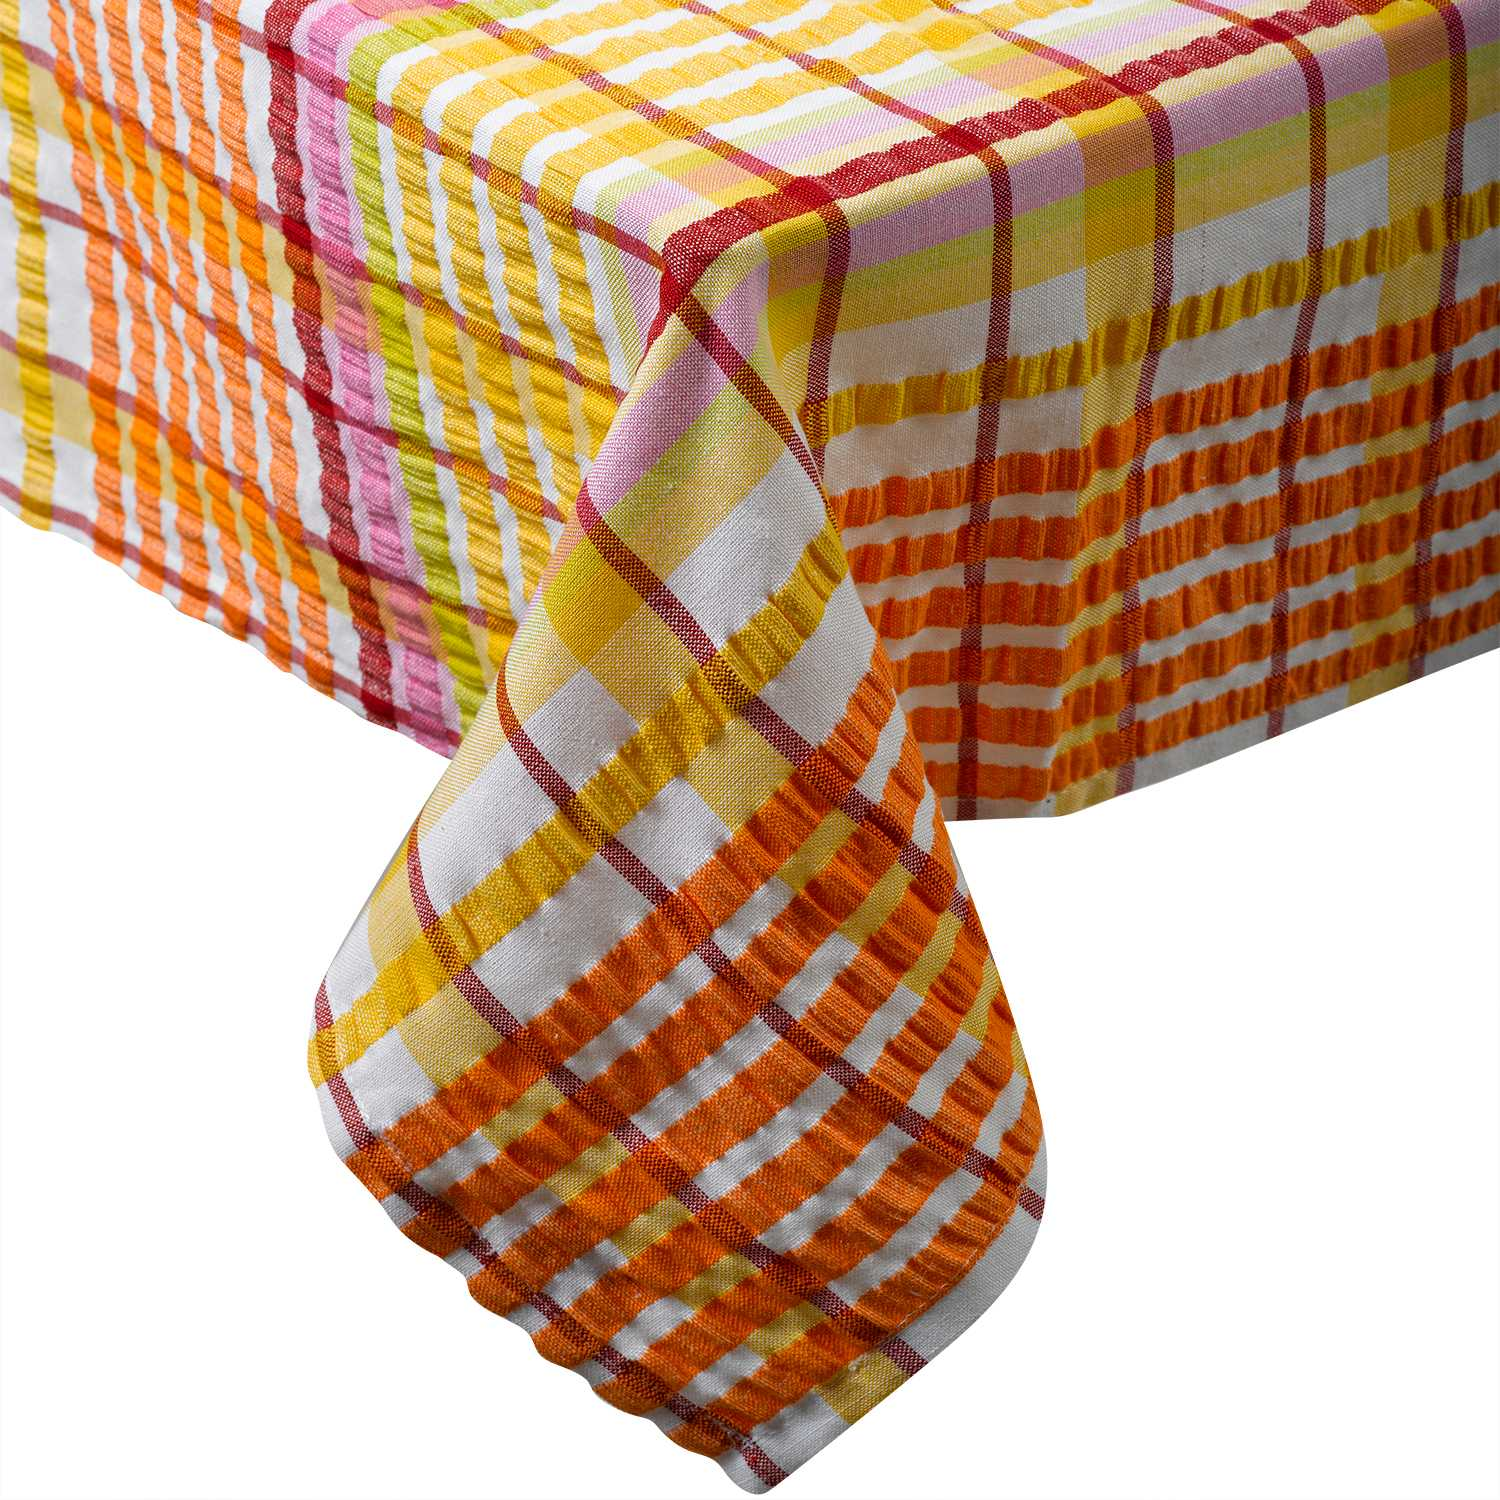 Traditional Bright Seersucker Table Cloth 100  Cotton Checked Dining Room  LinenTraditional Bright Seersucker Table Cloth 100  Cotton Checked  . Dining Room Linen Tablecloths. Home Design Ideas